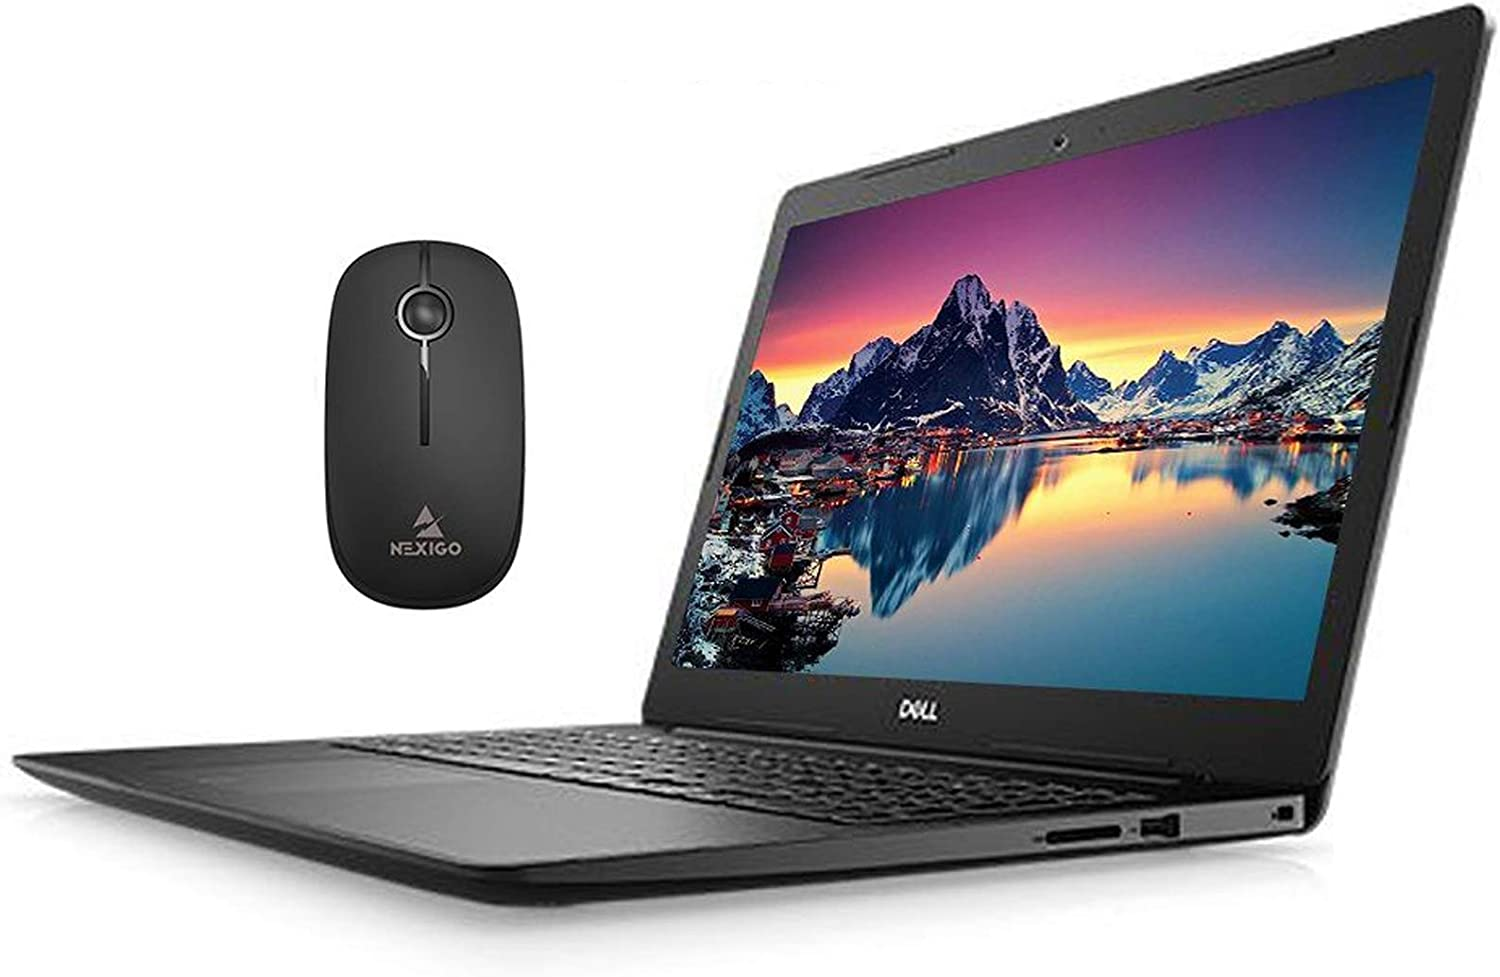 2020 Newest Dell Vostro 15 3590 FHD 1080P Laptop, Intel 4-Core i7-10510U up to 4.9 Hz, Radeon 610 2GB, 16GB RAM, 512GB SSD (Boot) + 1TB HDD, Win10 Pro + NexiGo Wireless Mouse Bundle